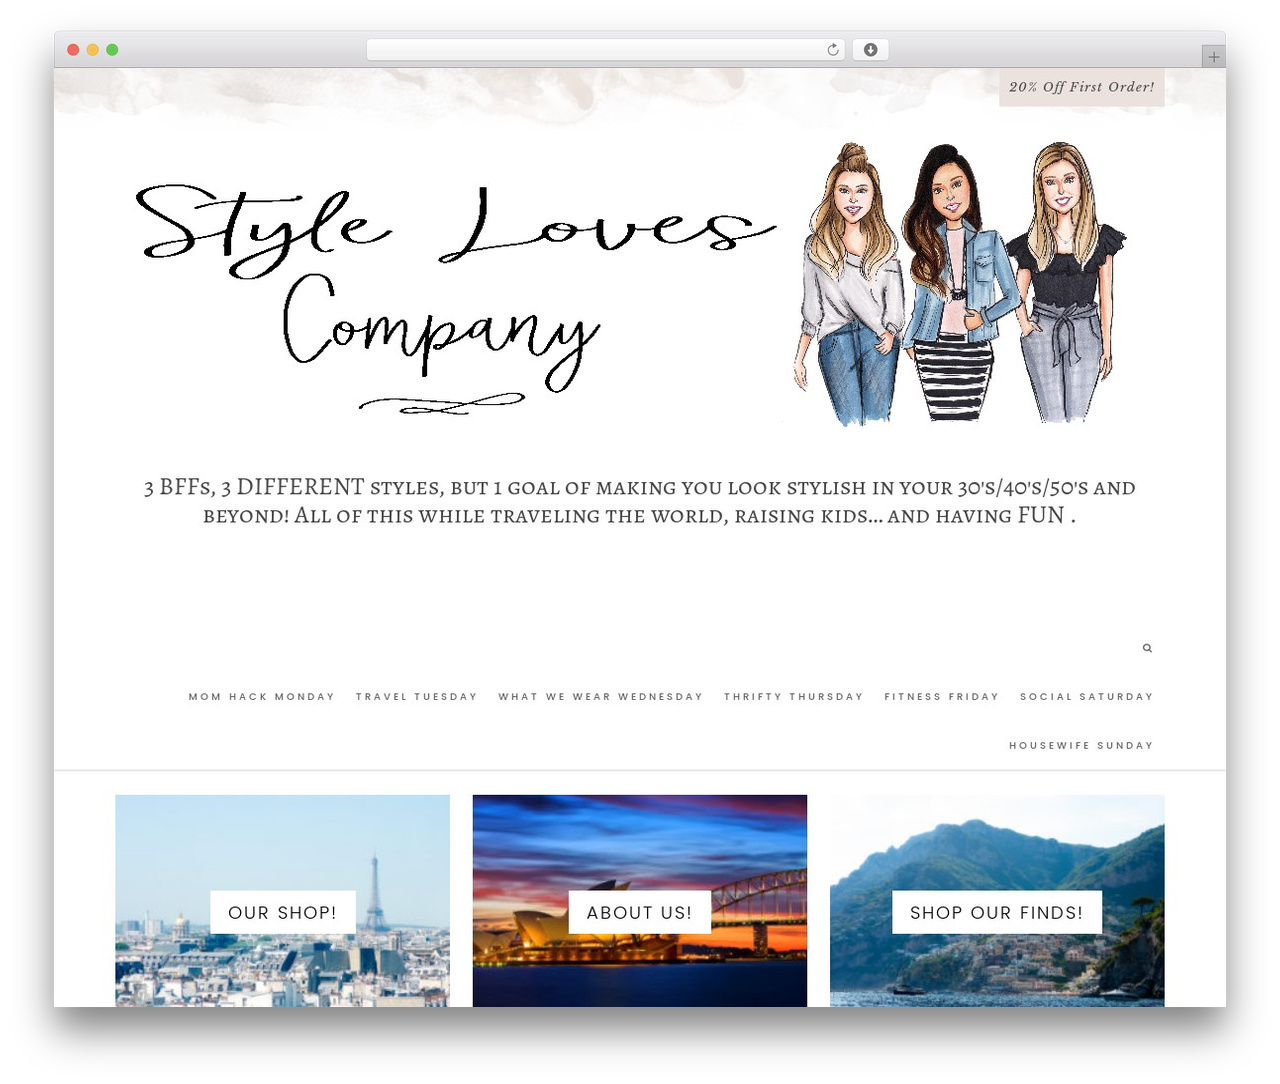 Hallie - Premium WordPress travel theme - stylelovescompany.com